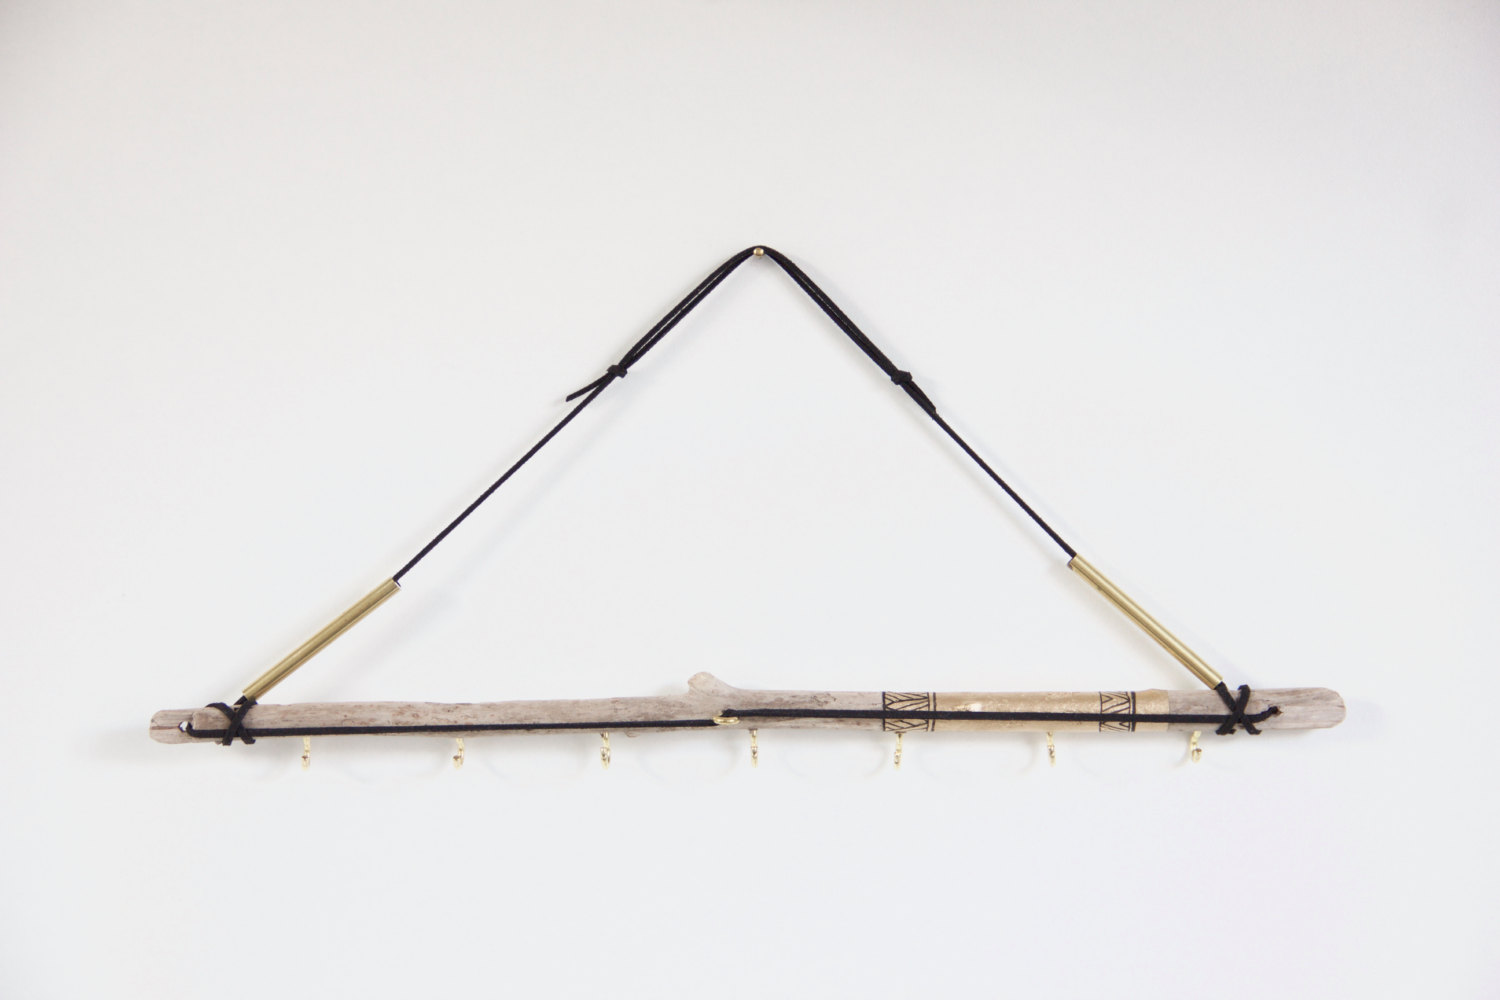 Creative and natural, this jewelry necklace holder made from driftwood and painted with gold has a minimalist air.